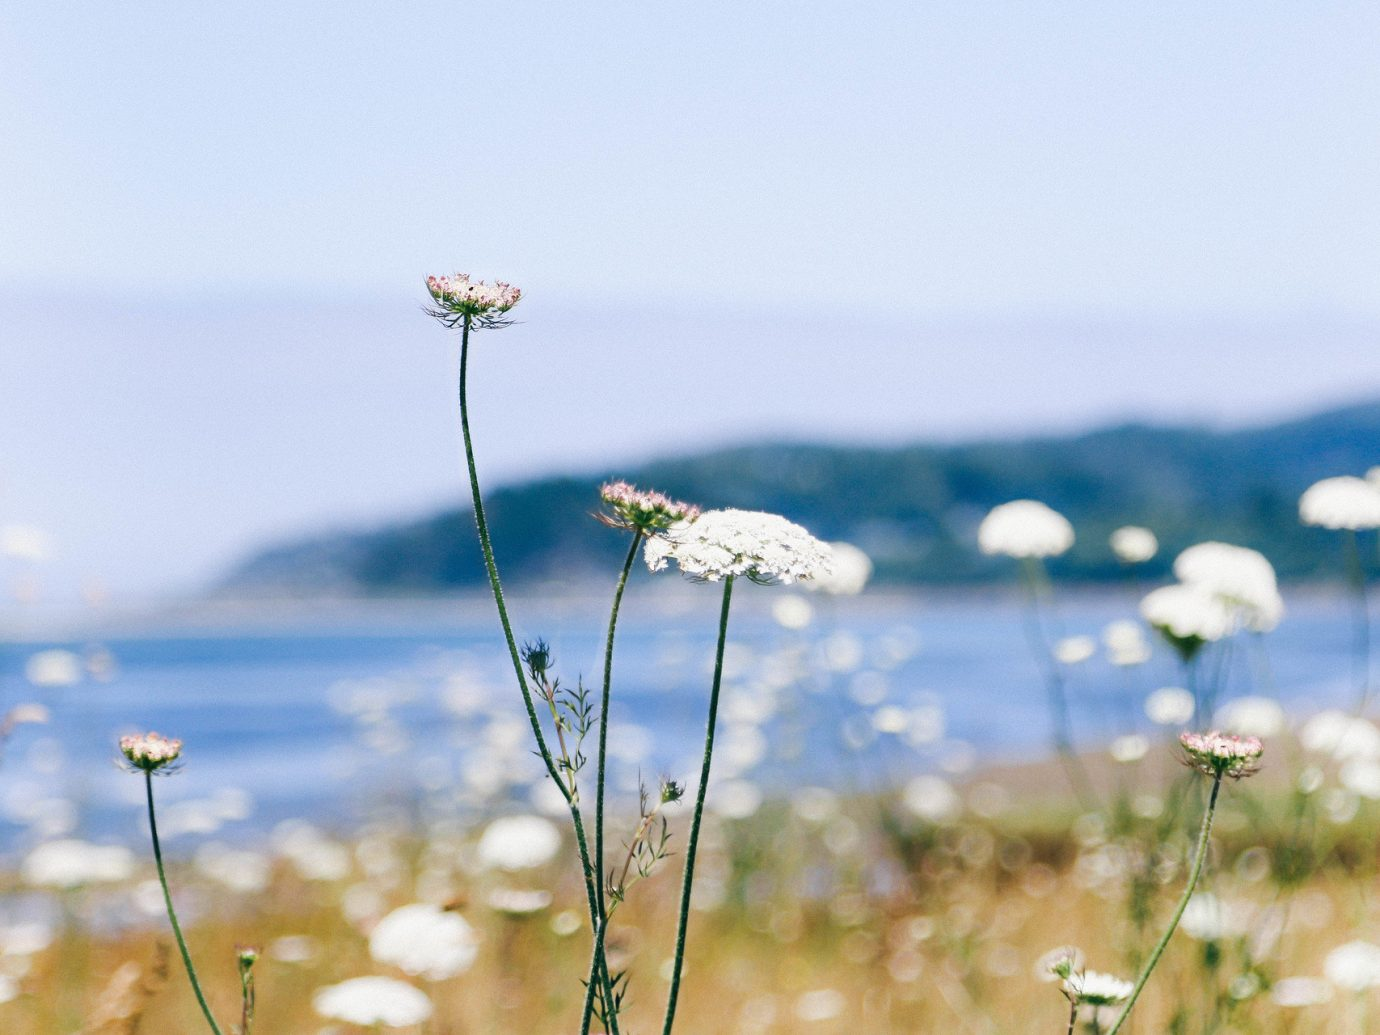 Jetsetter Guides Road Trips sky Nature flower flora water plant photography grassland grass meadow morning field land plant petal sunlight blossom wildflower flowering plant plant stem macro photography